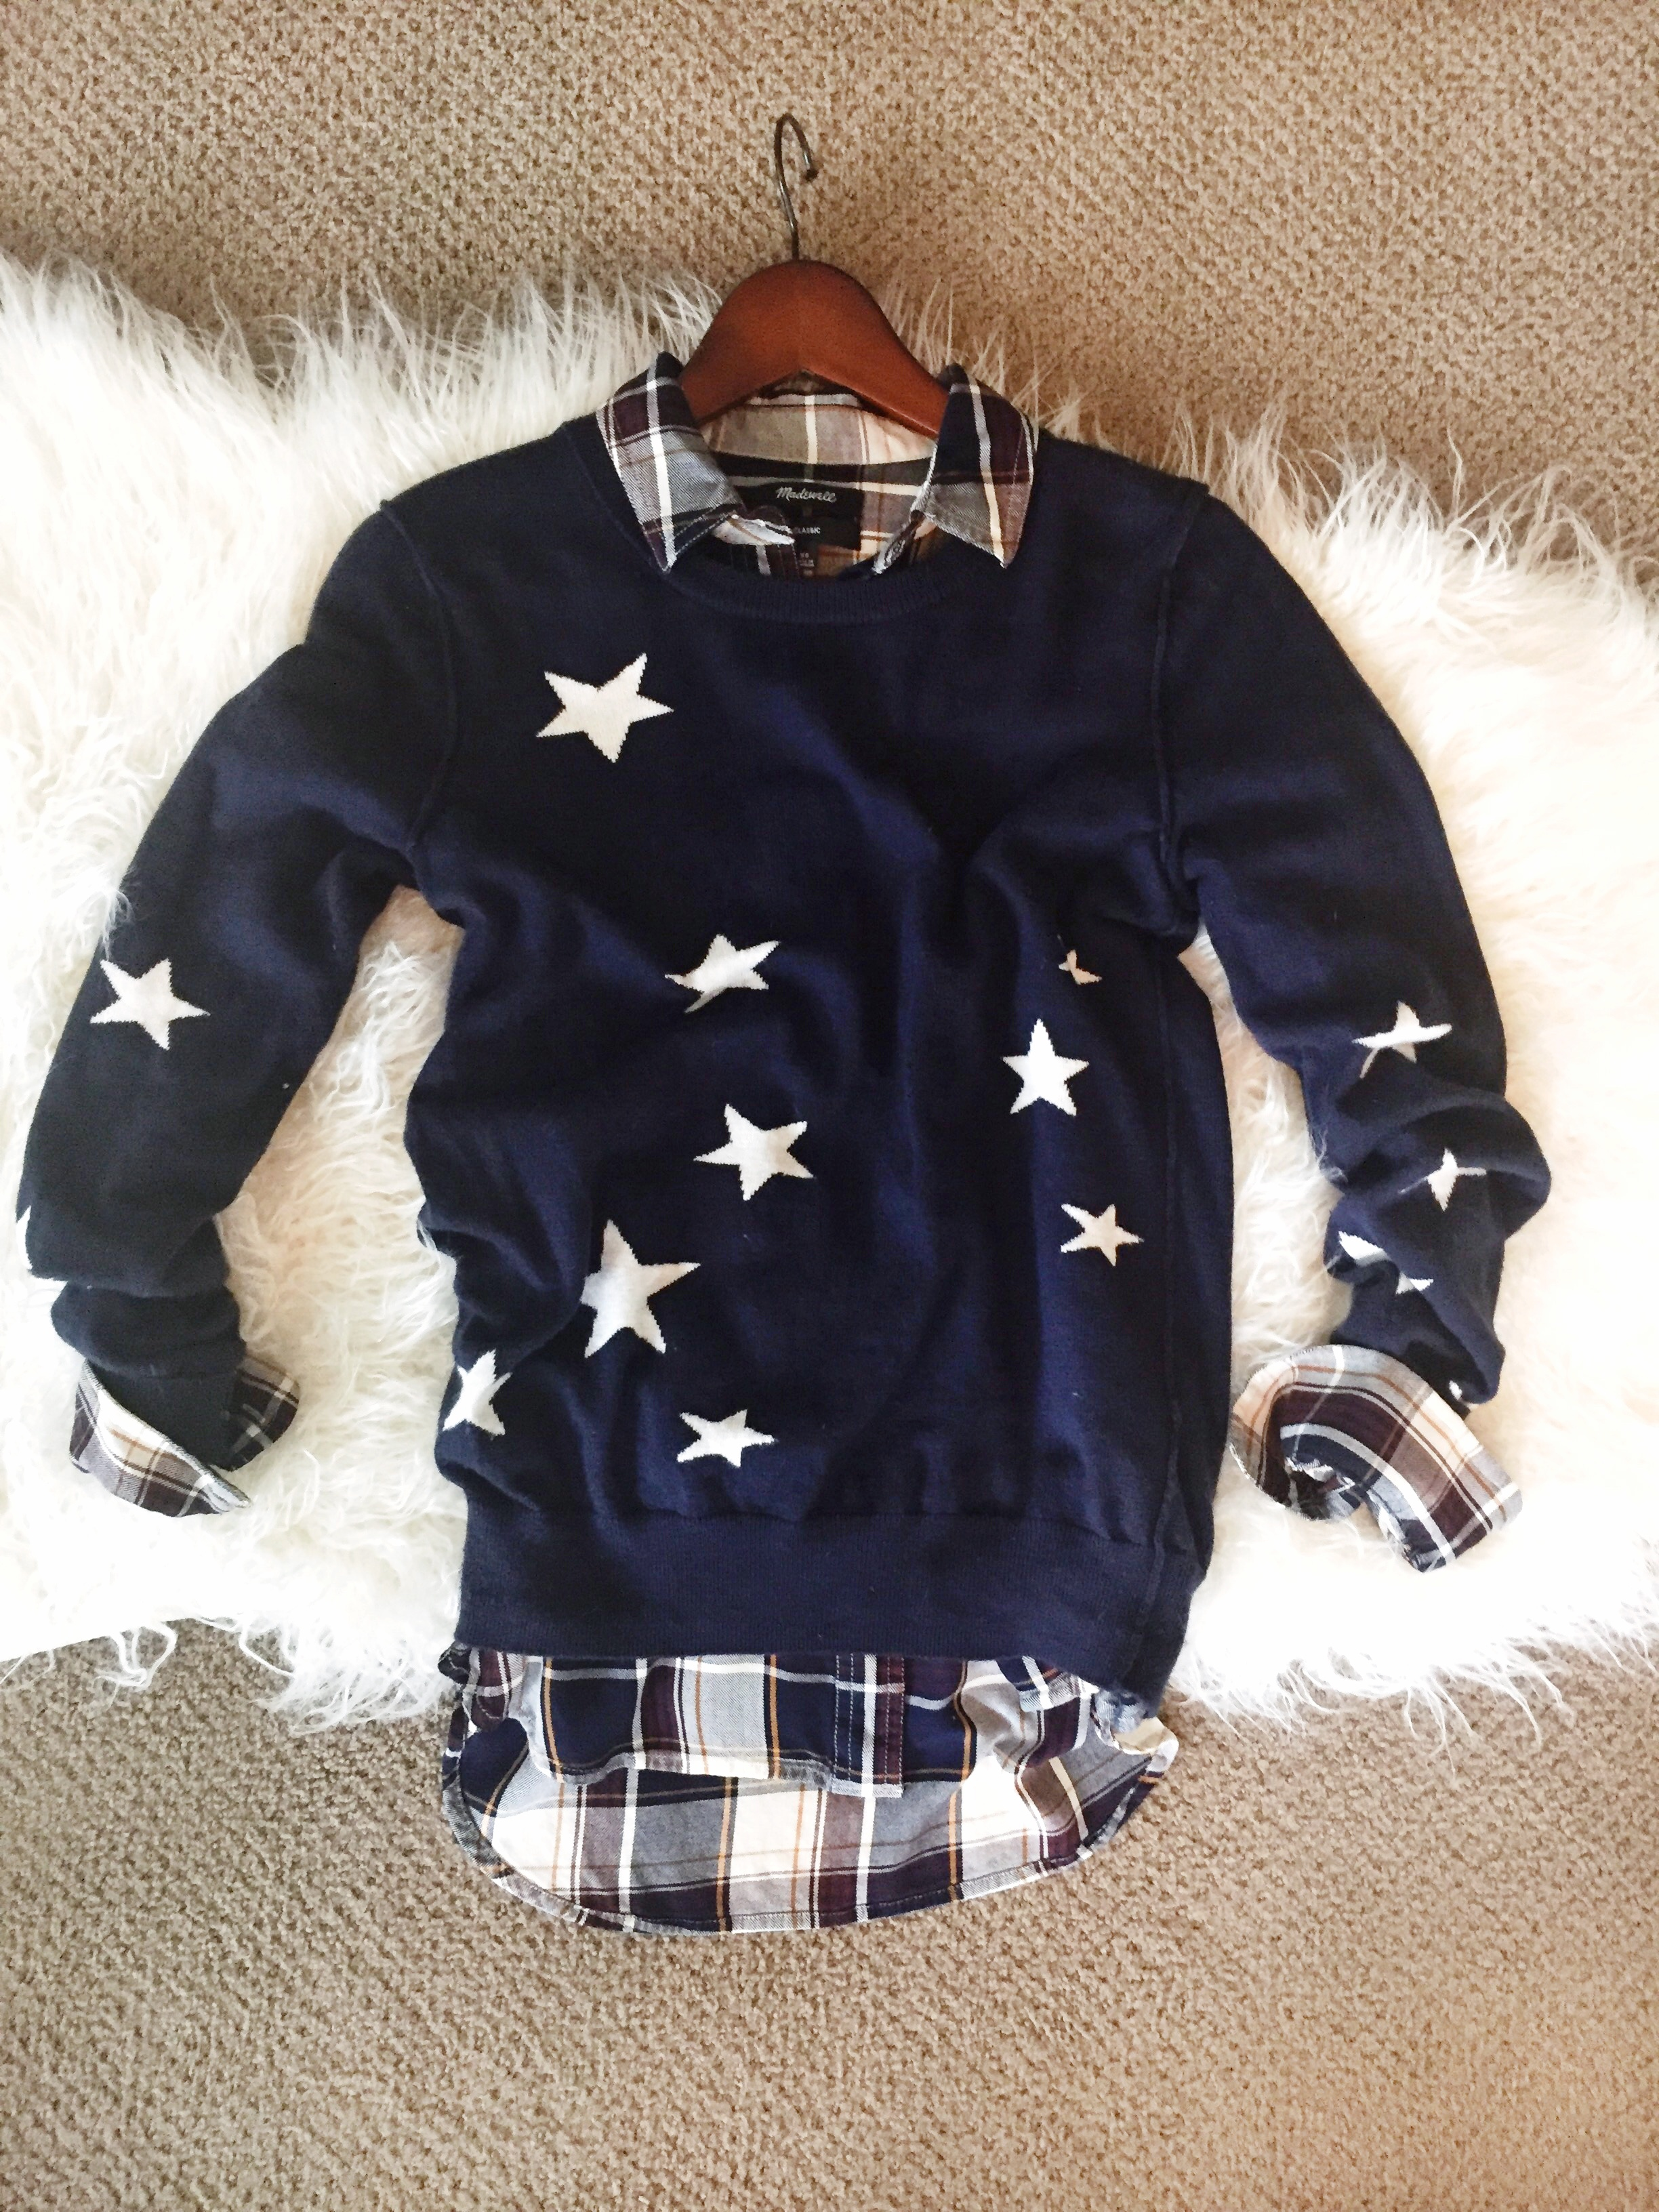 crew neck, sweaters, preppy, stars, stripes, layers, wear it, find your style, method39, navy, casual, everyday style